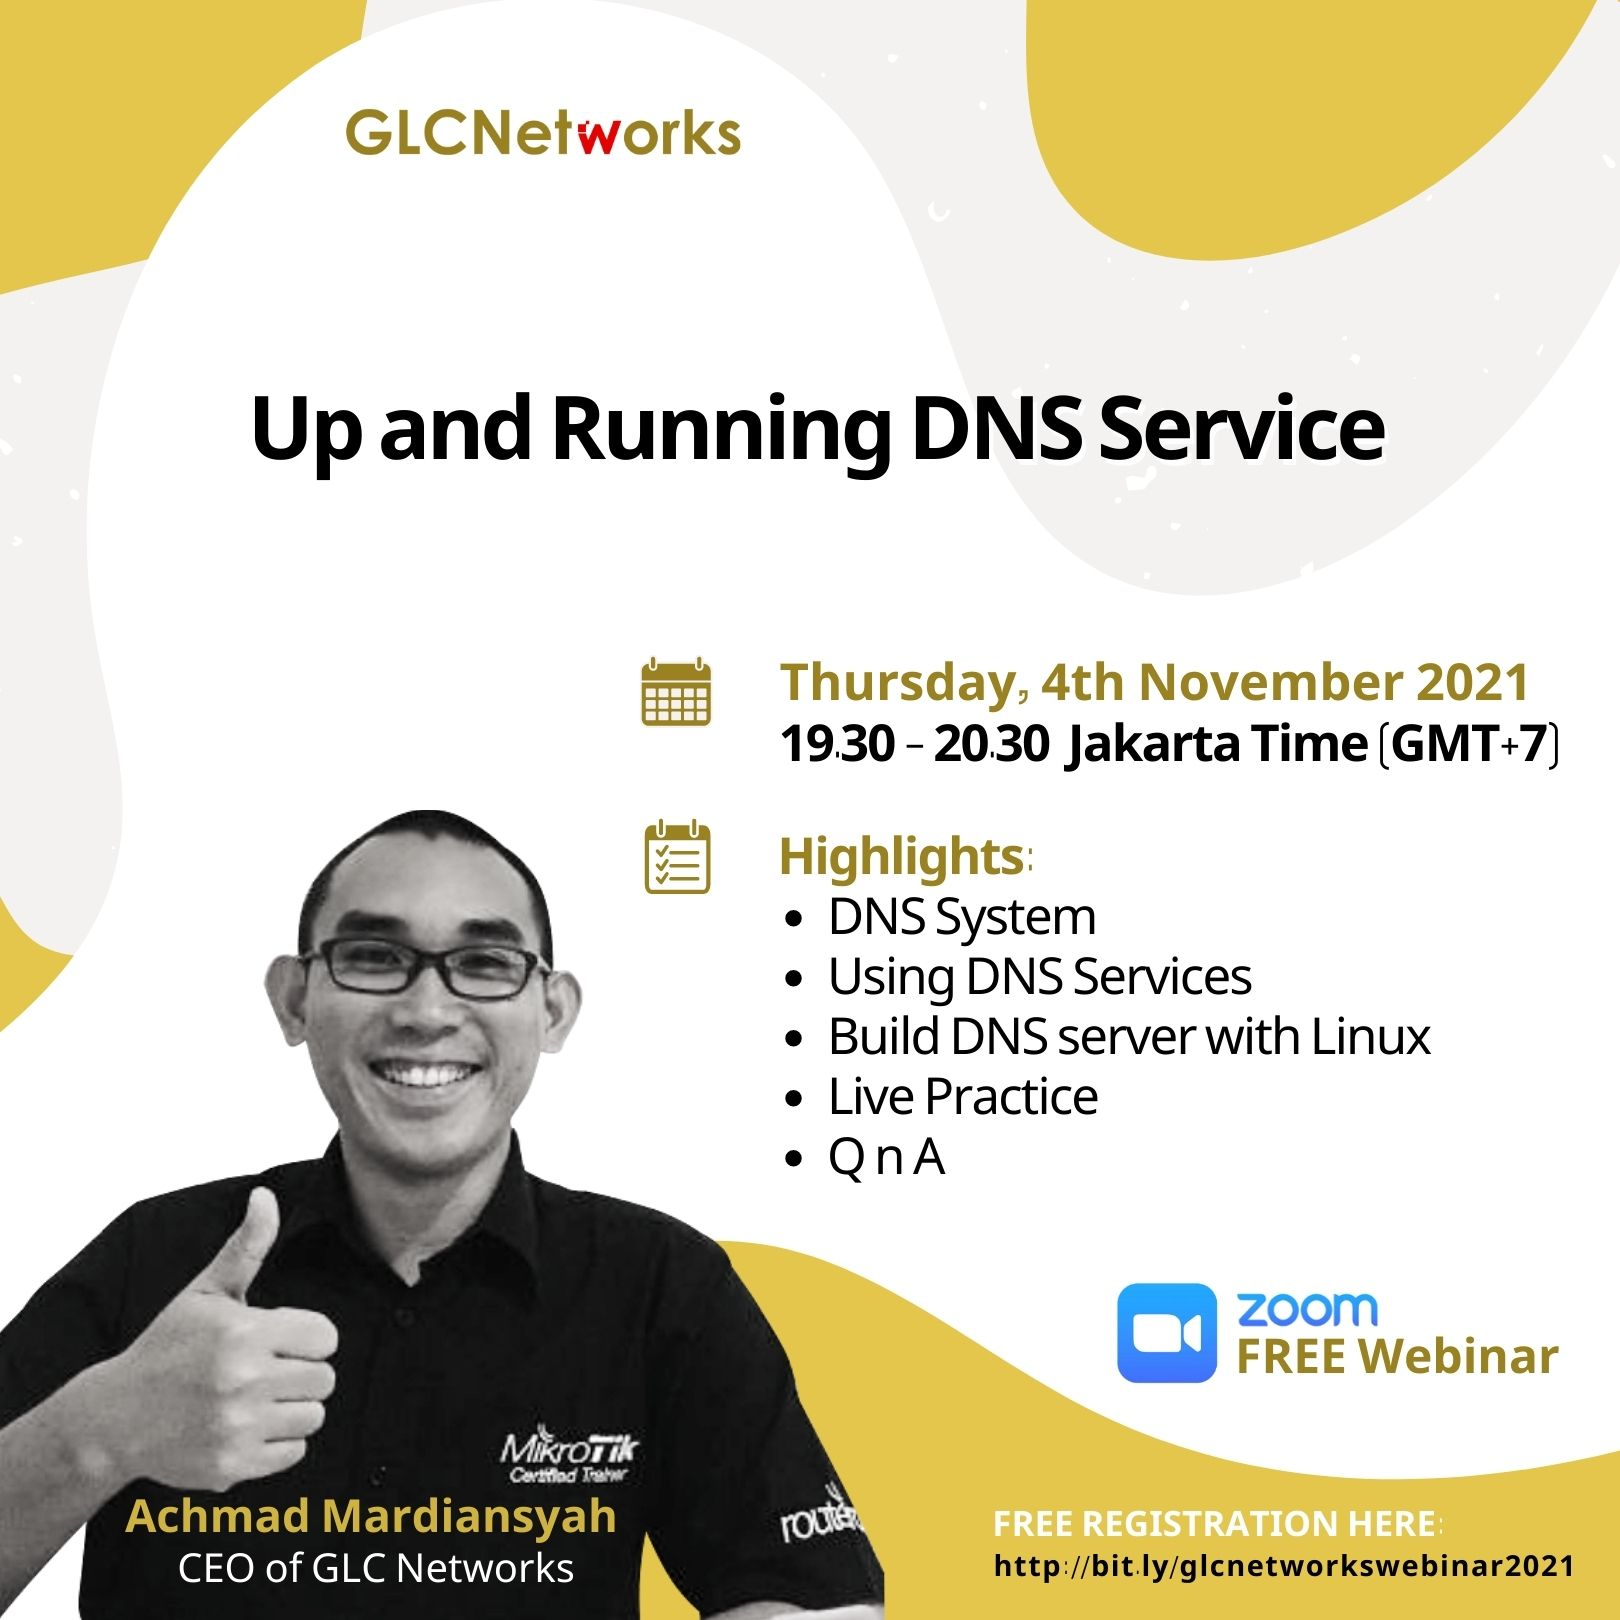 Up and Running DNS Service